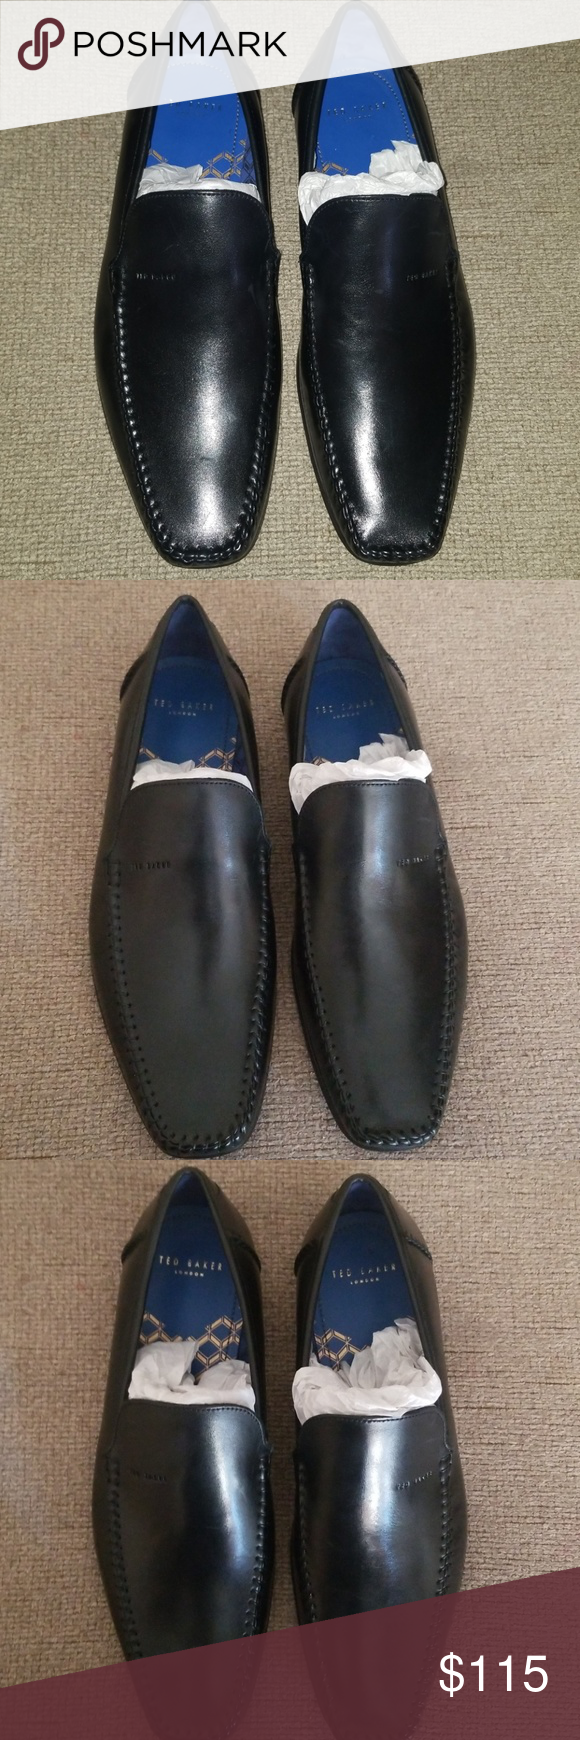 21e206ea2 Ted Baker London BLY-9mens shoes! Brand new Ted Baker London BLY-9 men  shoes. Regular price is  175 Ted Baker London Shoes Oxfords   Derbys